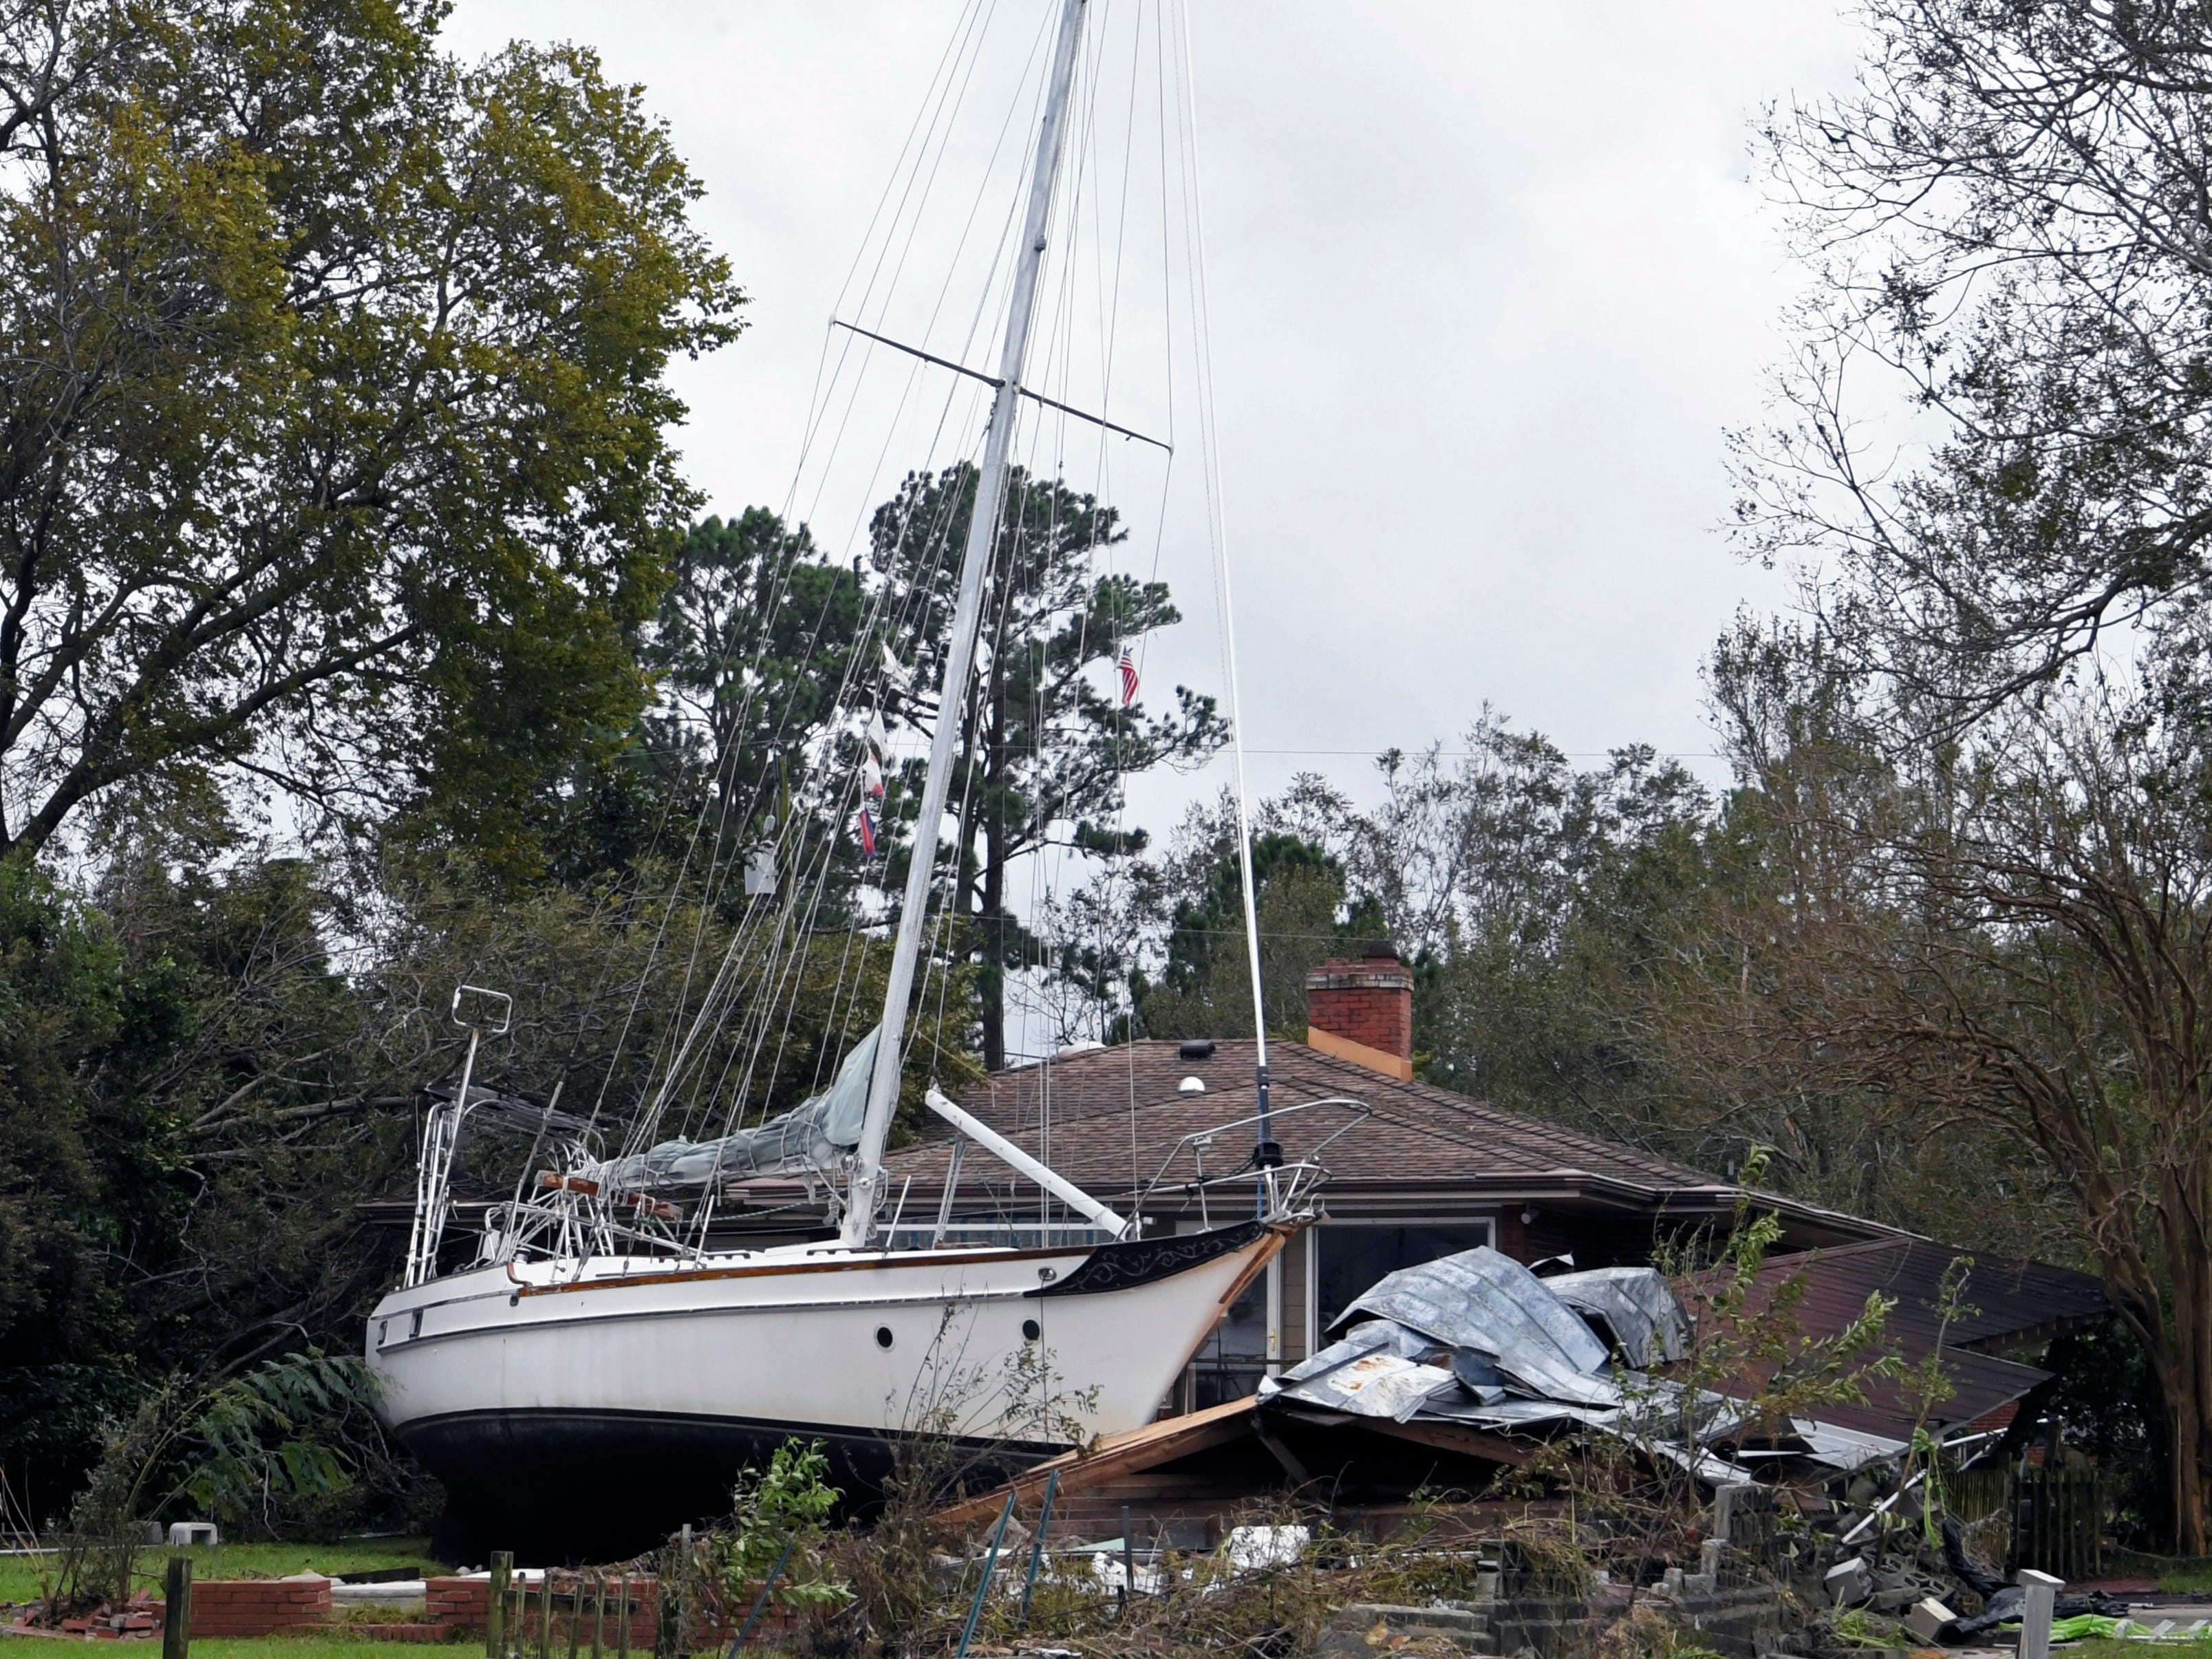 A large sailboat rests in a New Bern, N.C., backyard  on Sunday, Sept. 16, 2018 after flooding from Hurricane Florence.